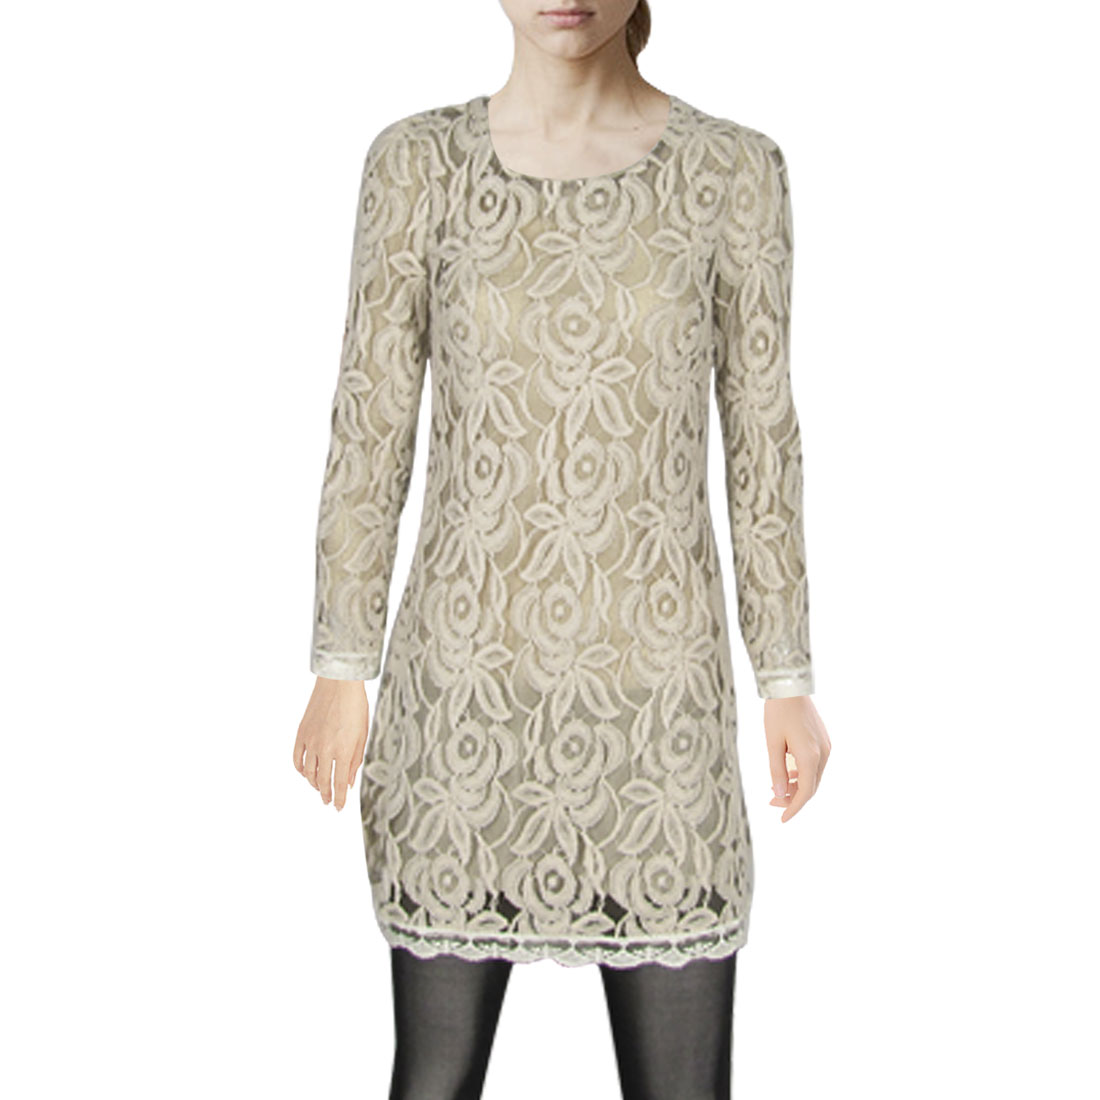 Scoop Neck Long Sleeve Lace Edge Lining Autumn Dress for Lady XS